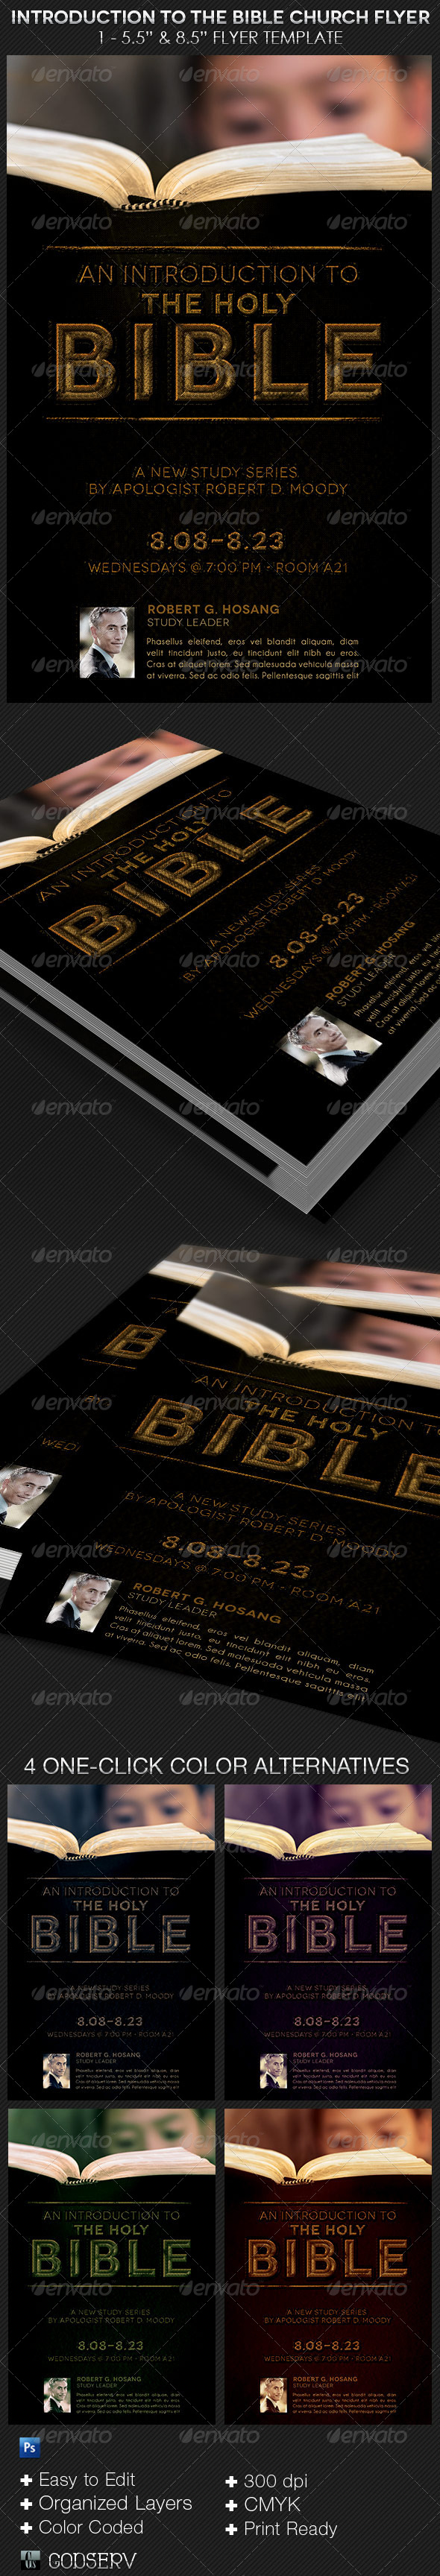 GraphicRiver Introduction to The Bible Church Flyer Template 8565318